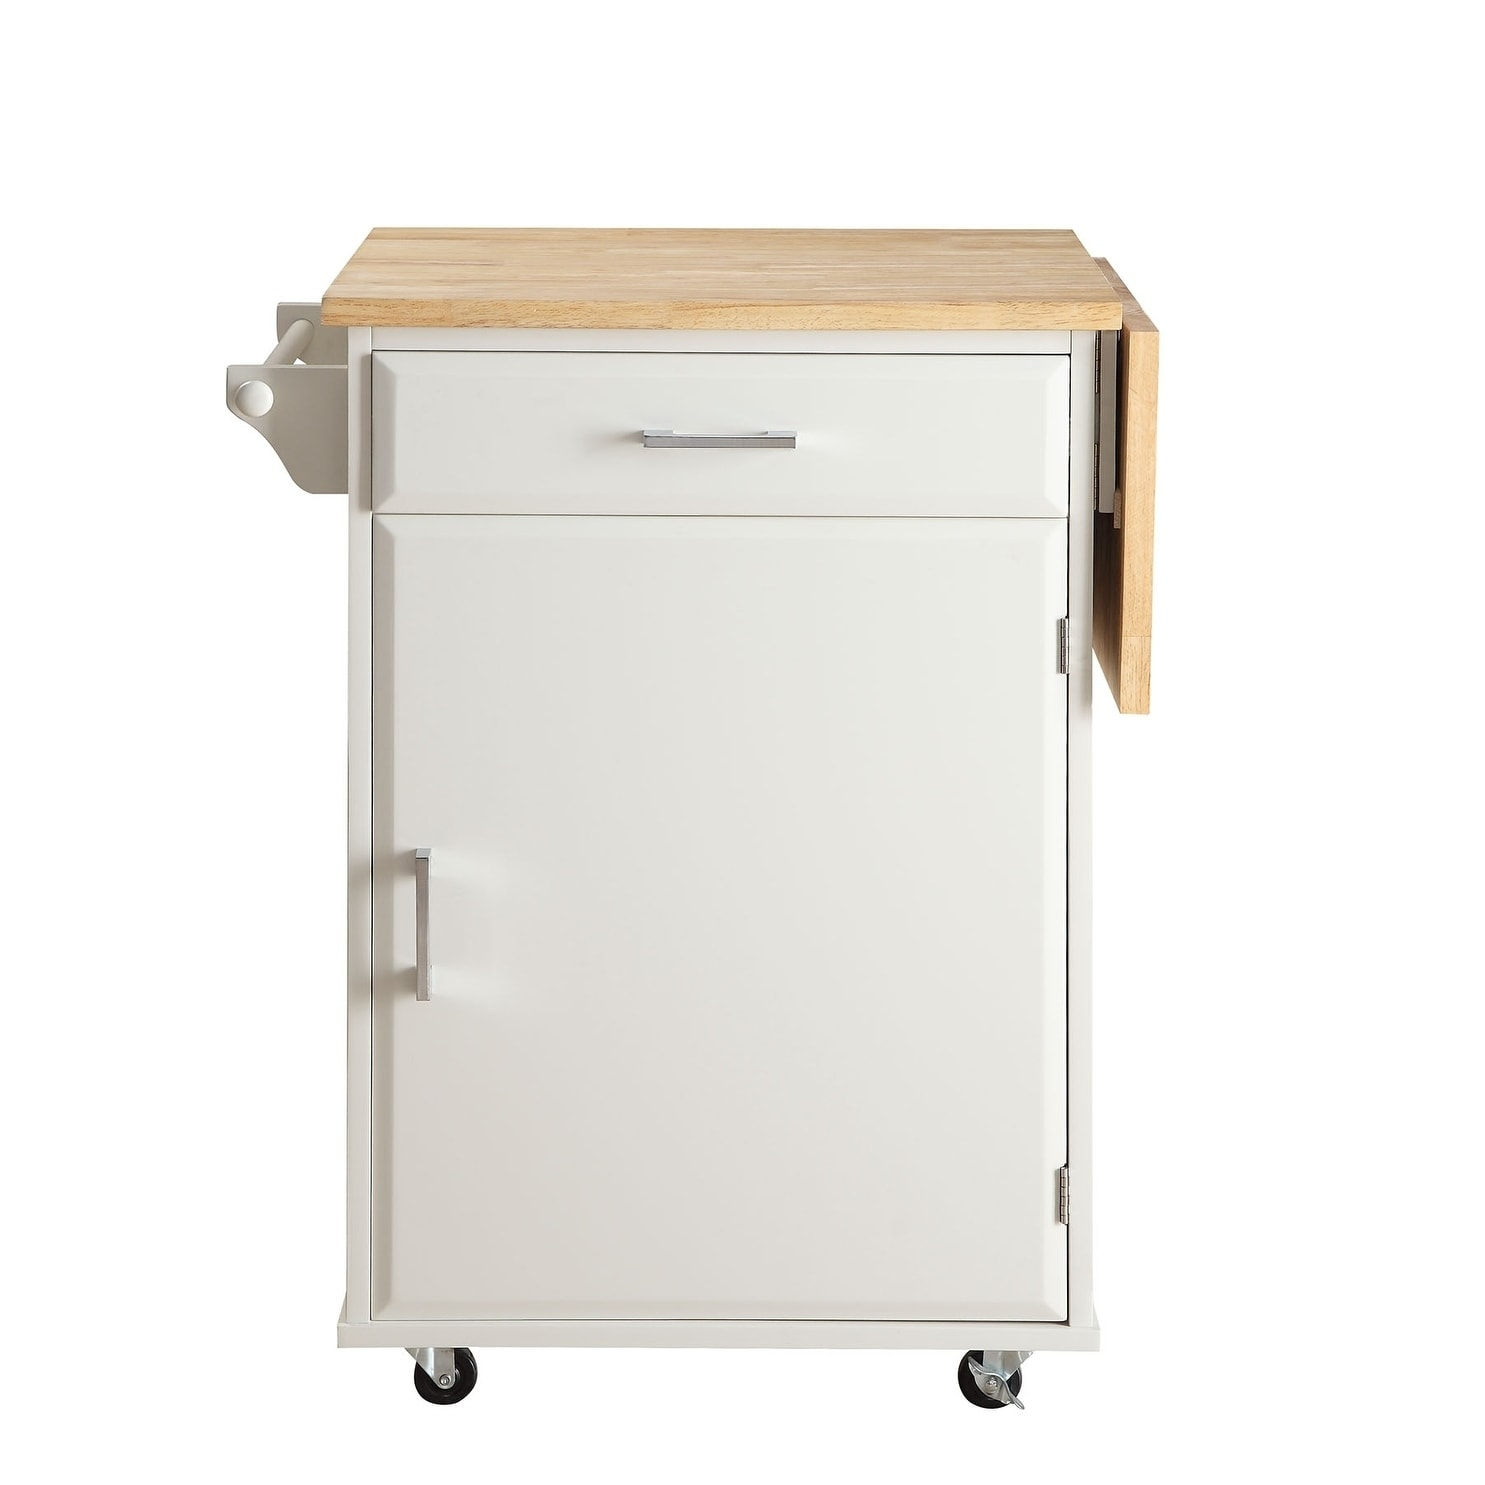 Shop townville white wood small kitchen cart free shipping today overstock com 19897304